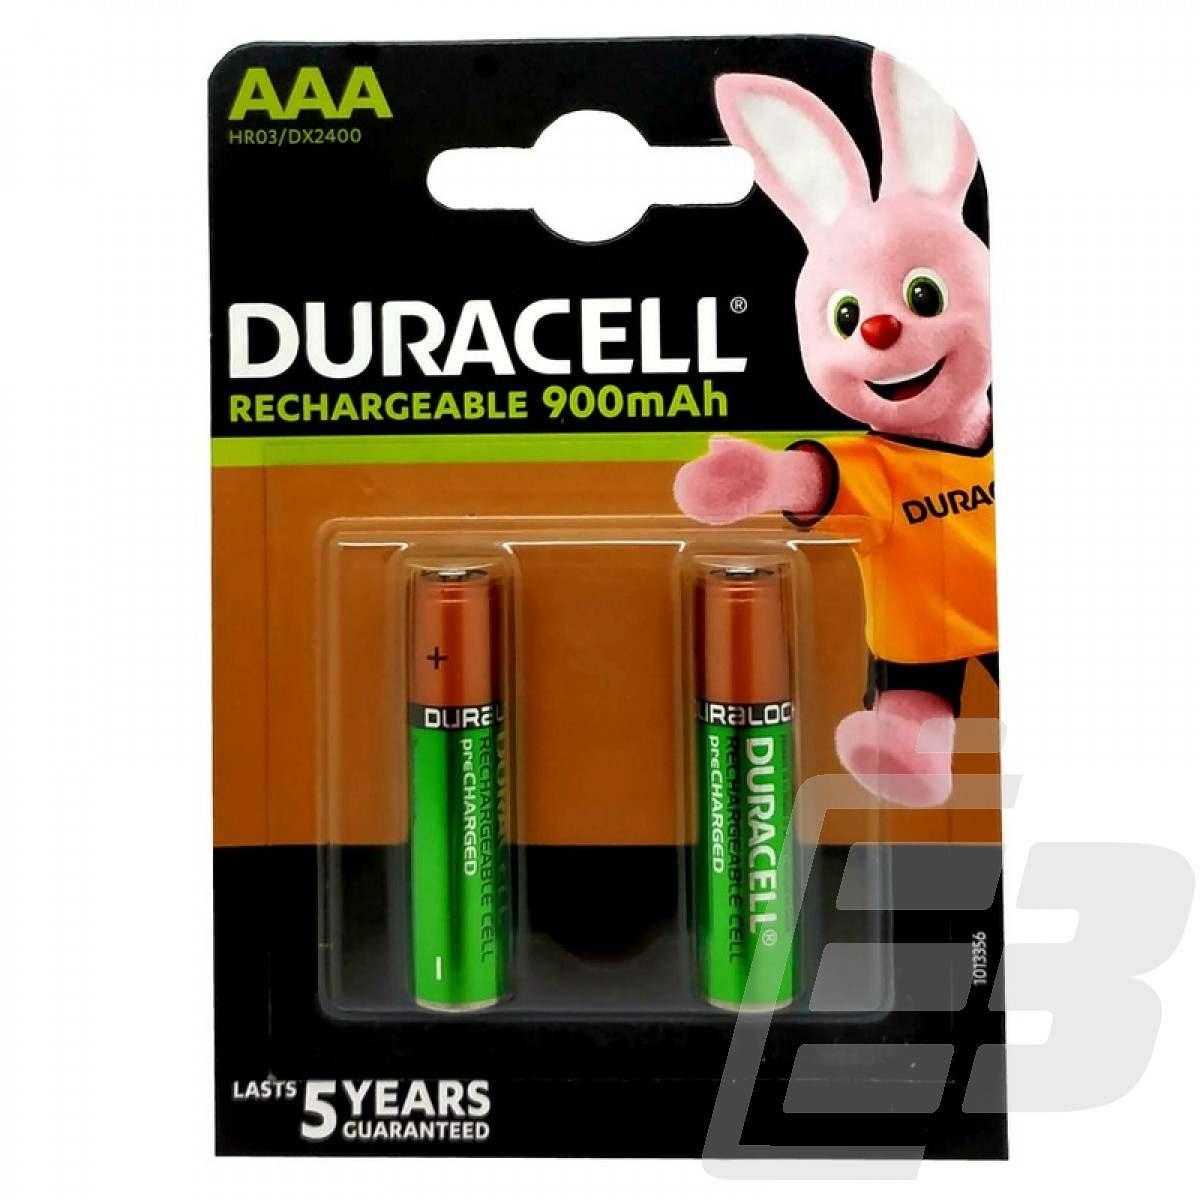 Duracell AAA Rechargeable Battery 900mah 1